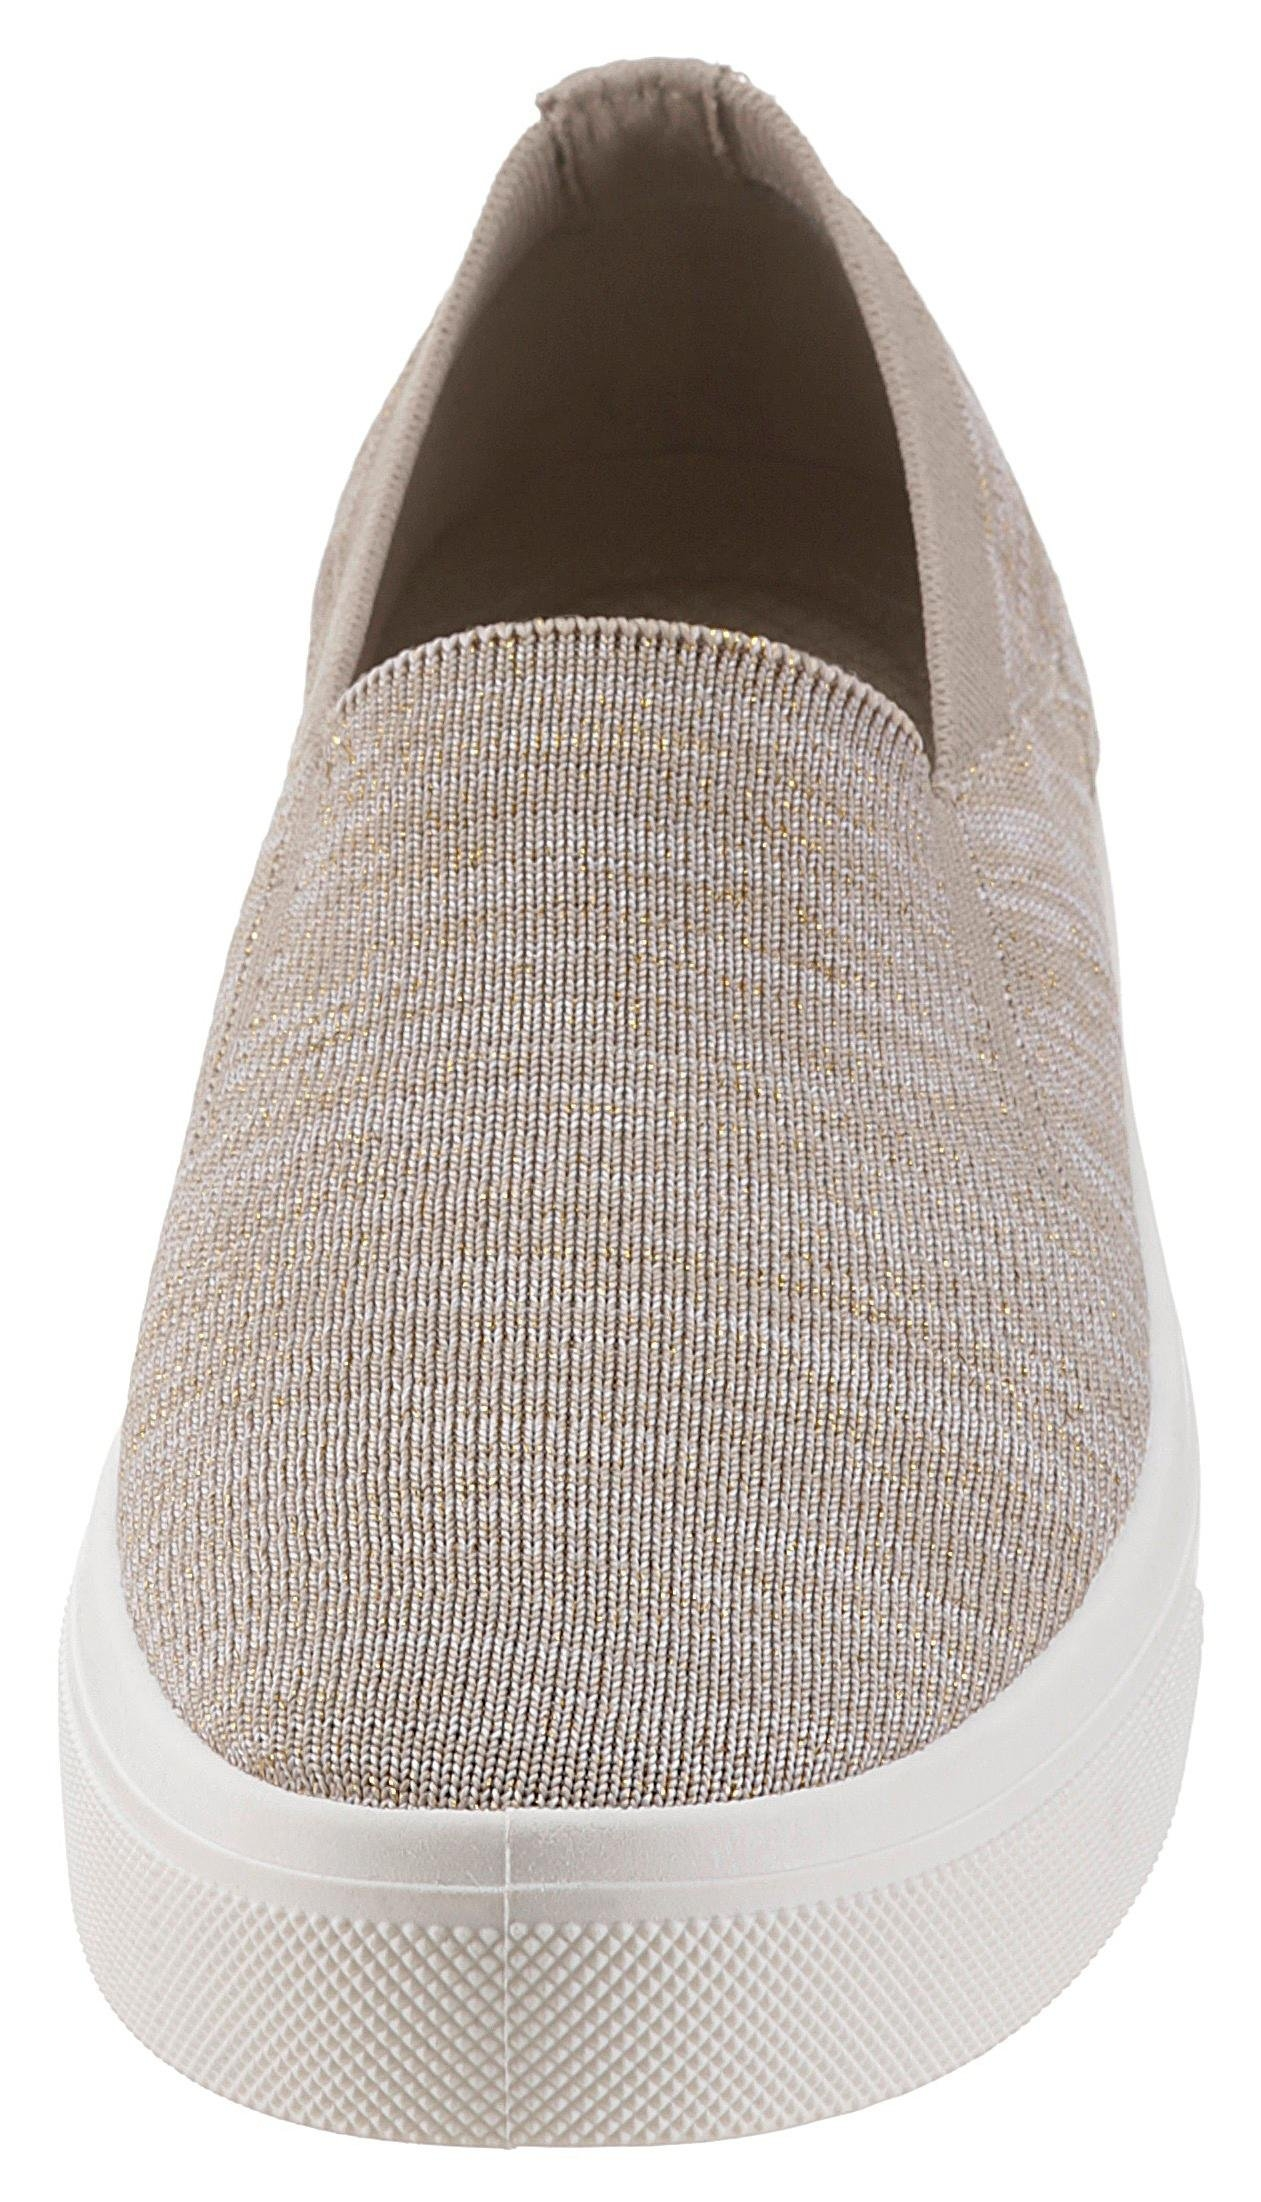 wholesale dealer 62343 729da skechers slip-on sneakers »poppy - cloud dust« beige